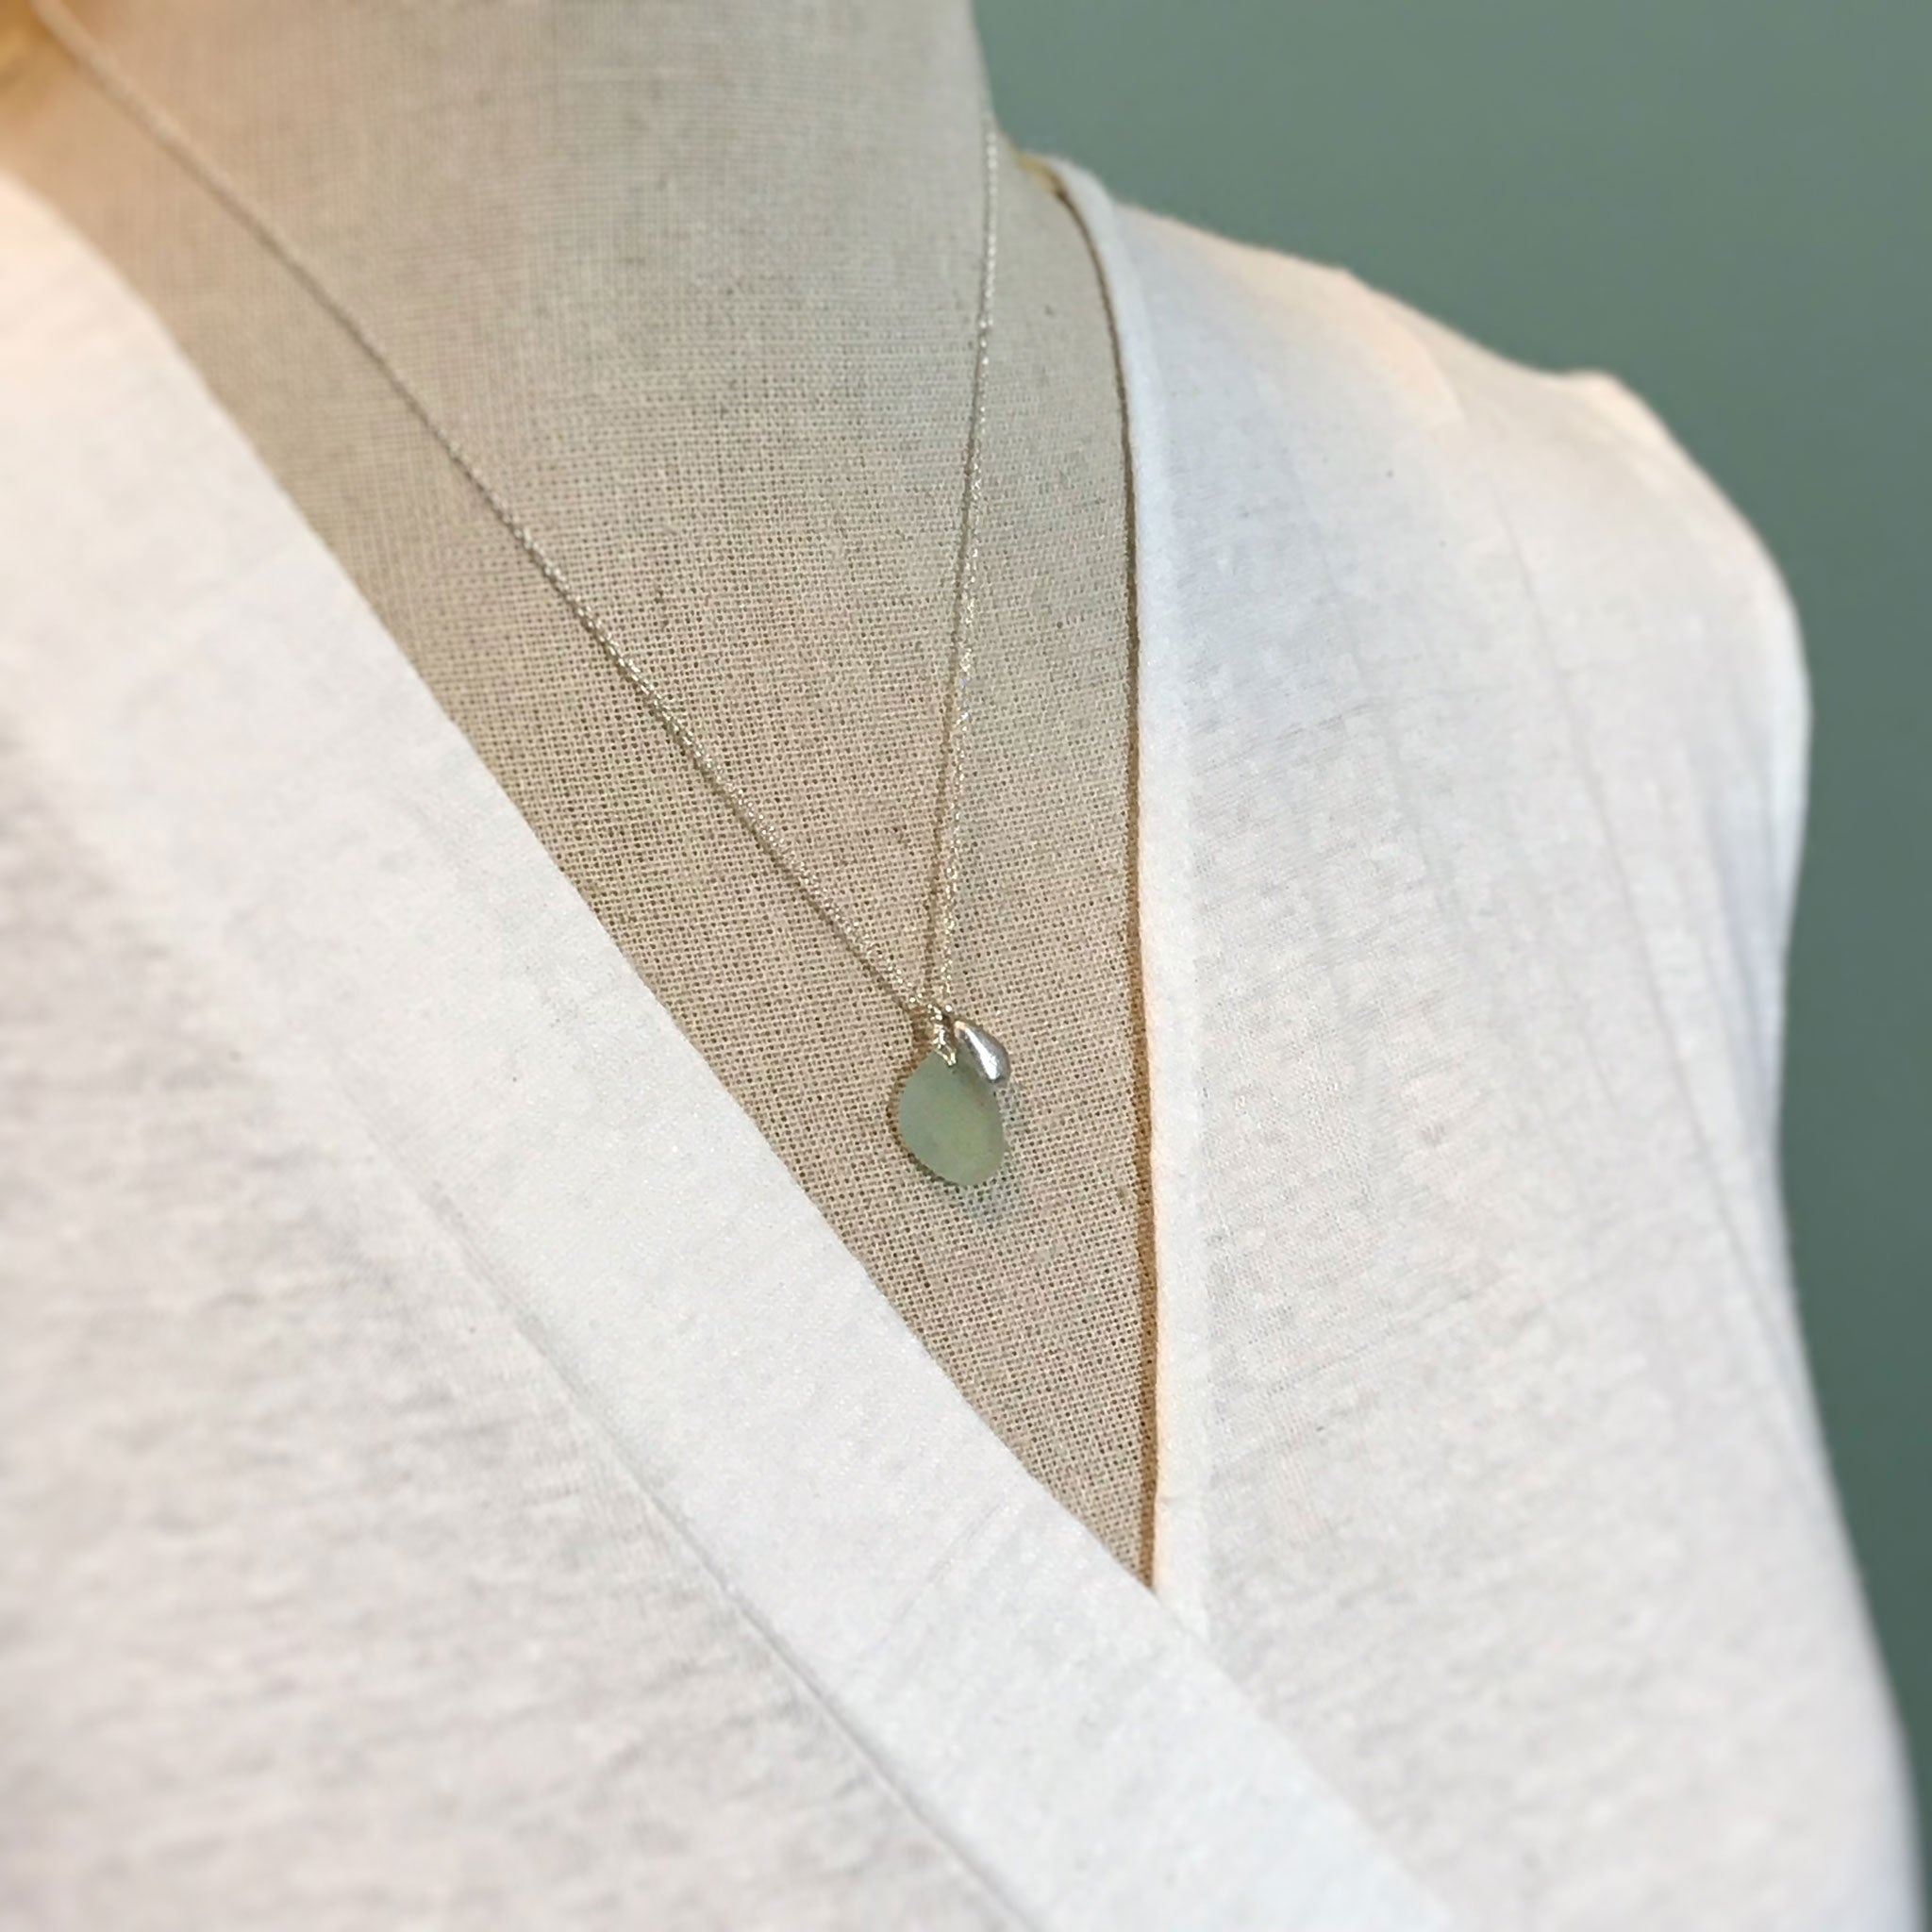 Pale Green Seaglass Necklace with Solid Silver Teardrop Charm - kriket-broadhurst jewellery Australian made